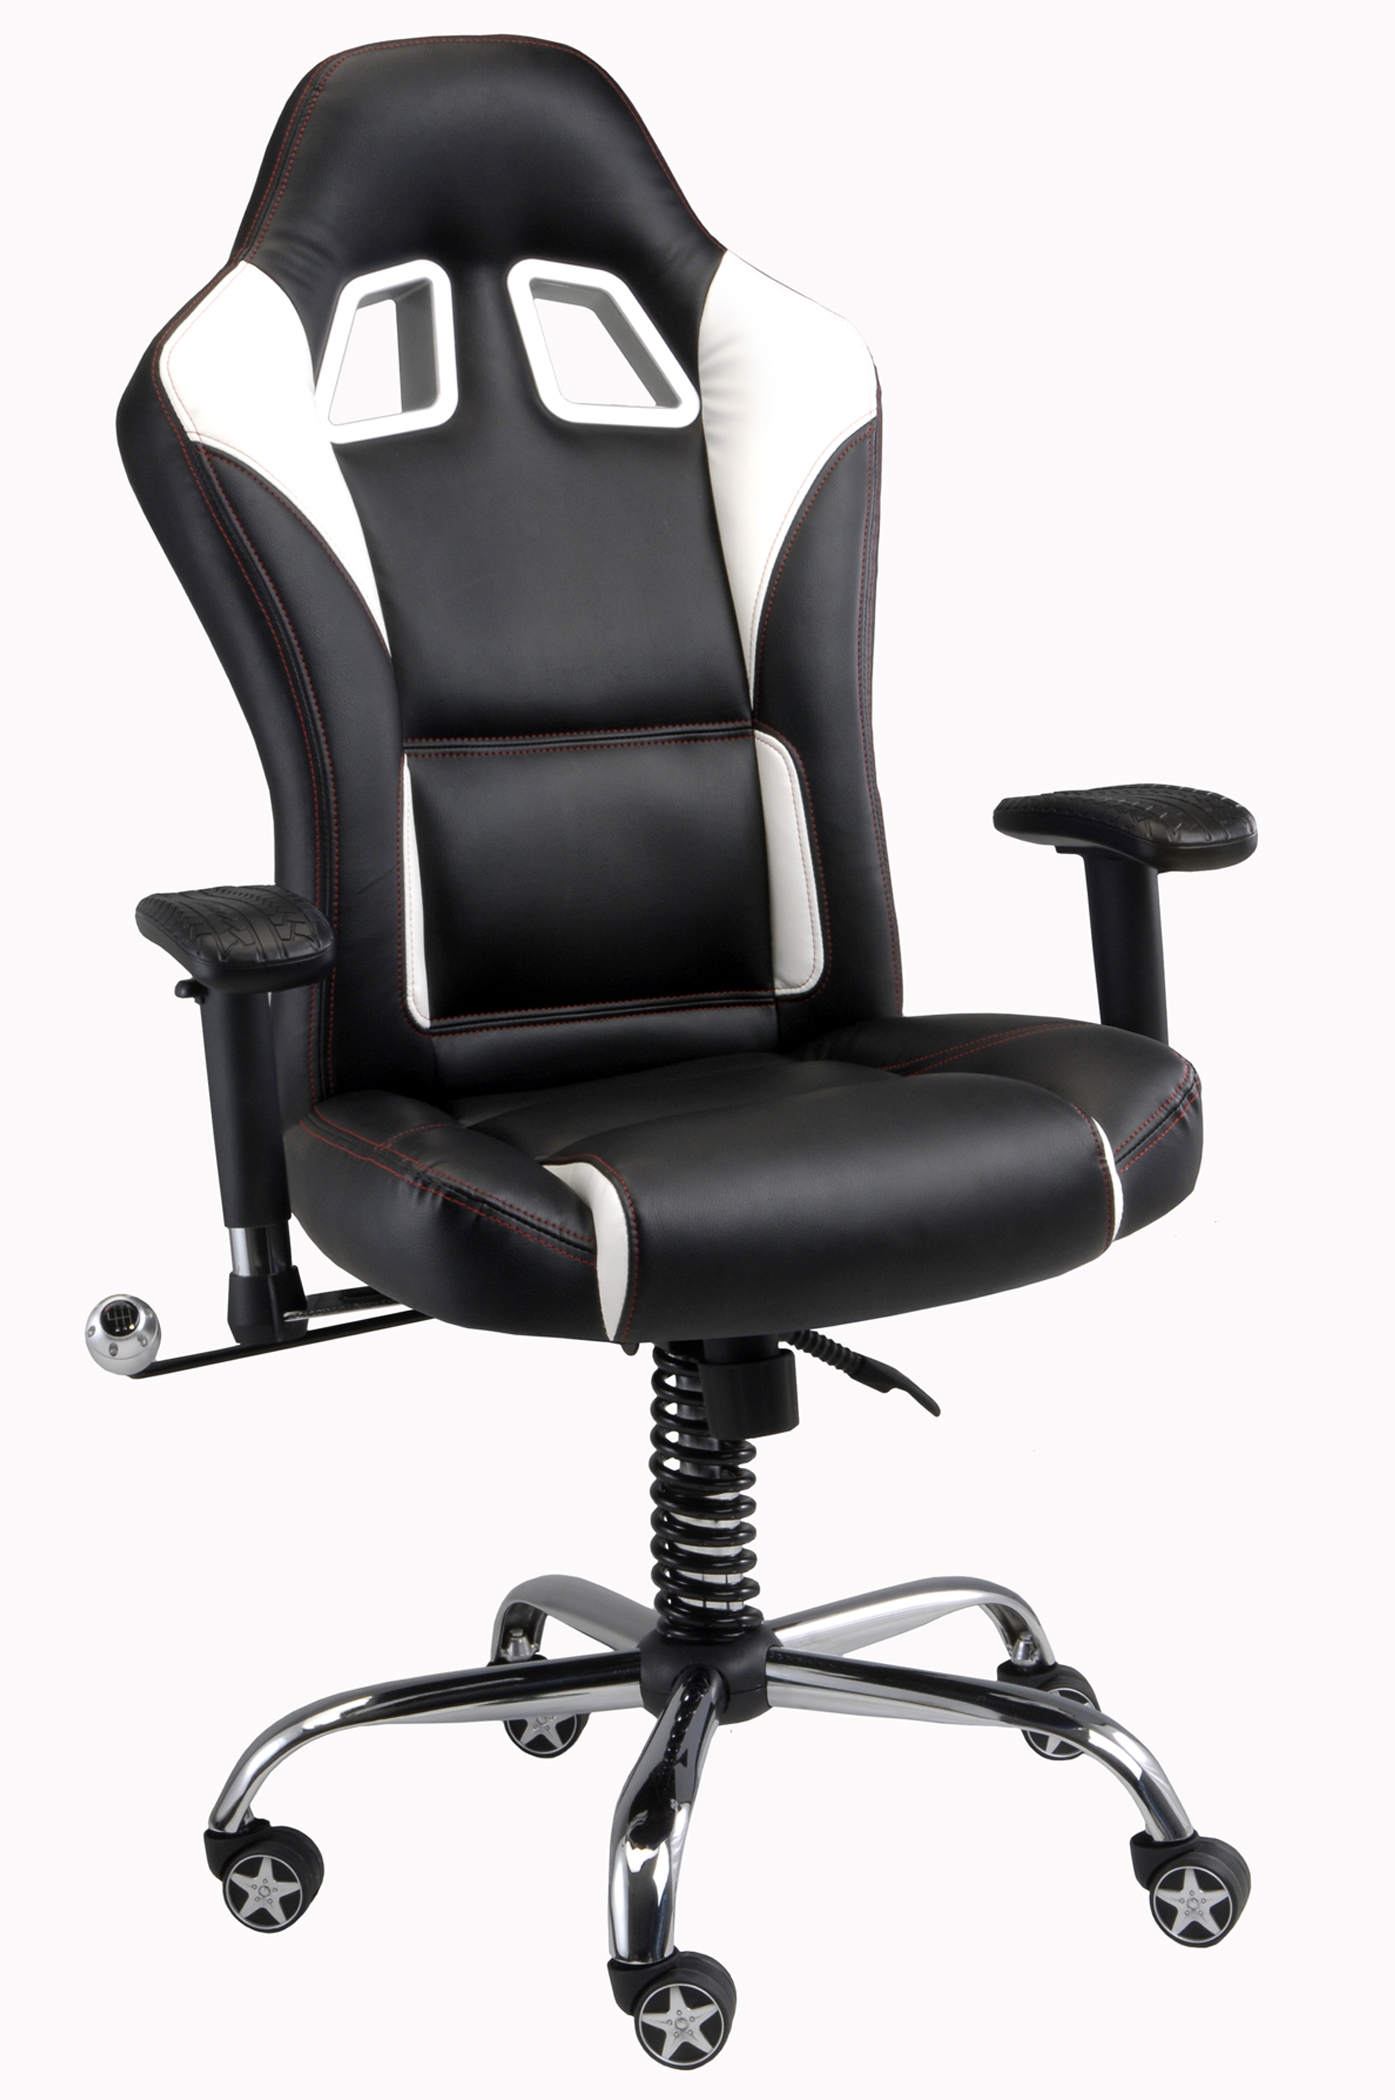 Pitstop Furniture Intro Tech Automotive Se Office Chair In1100b Ebay